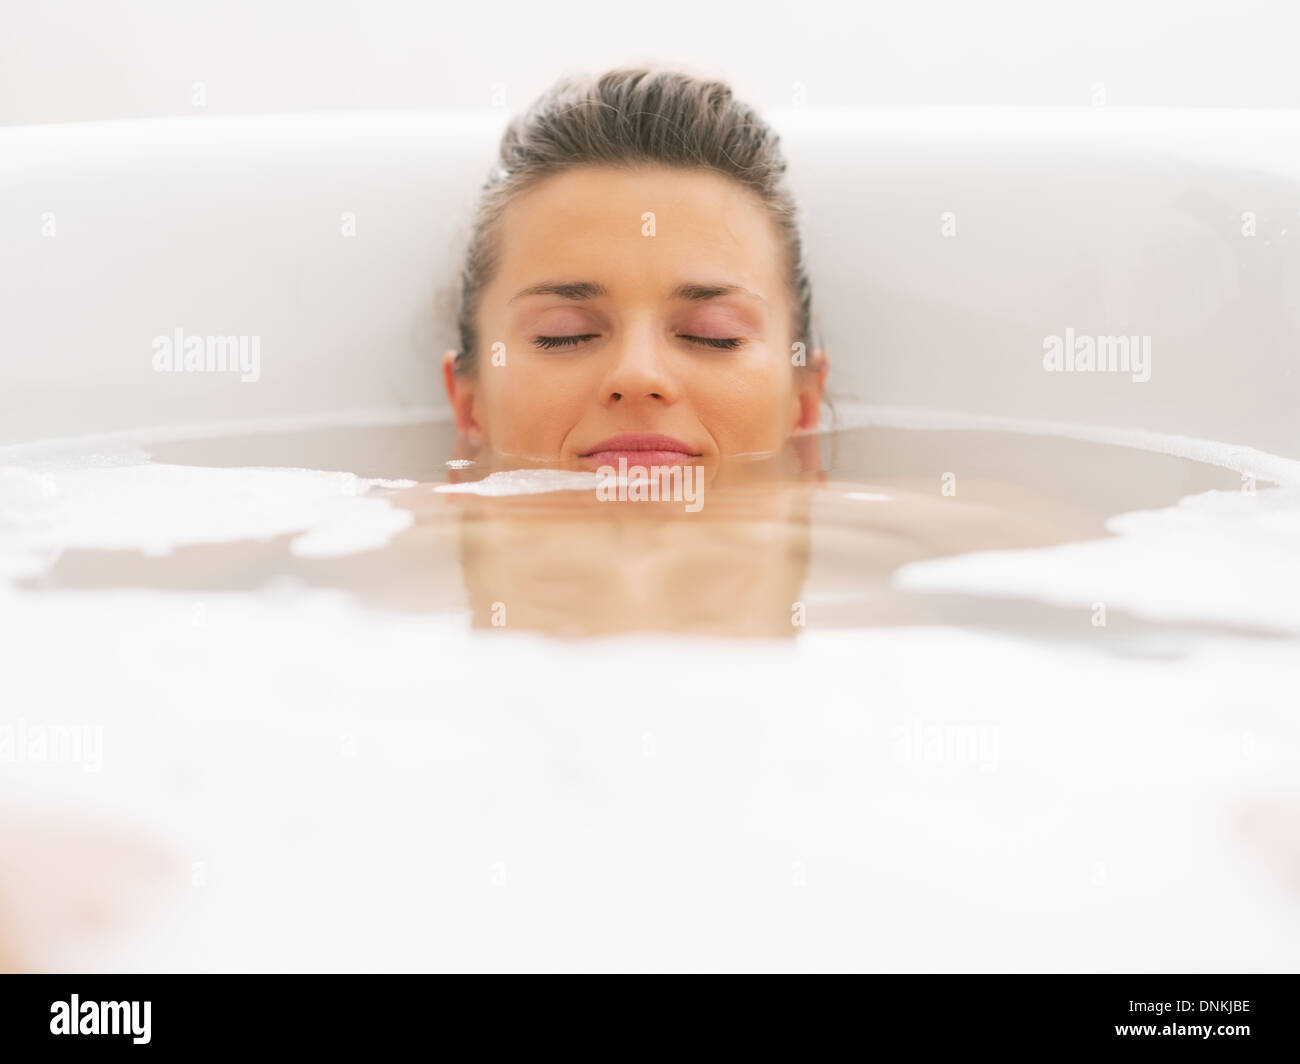 Young woman laying under water in bathtub - Stock Image